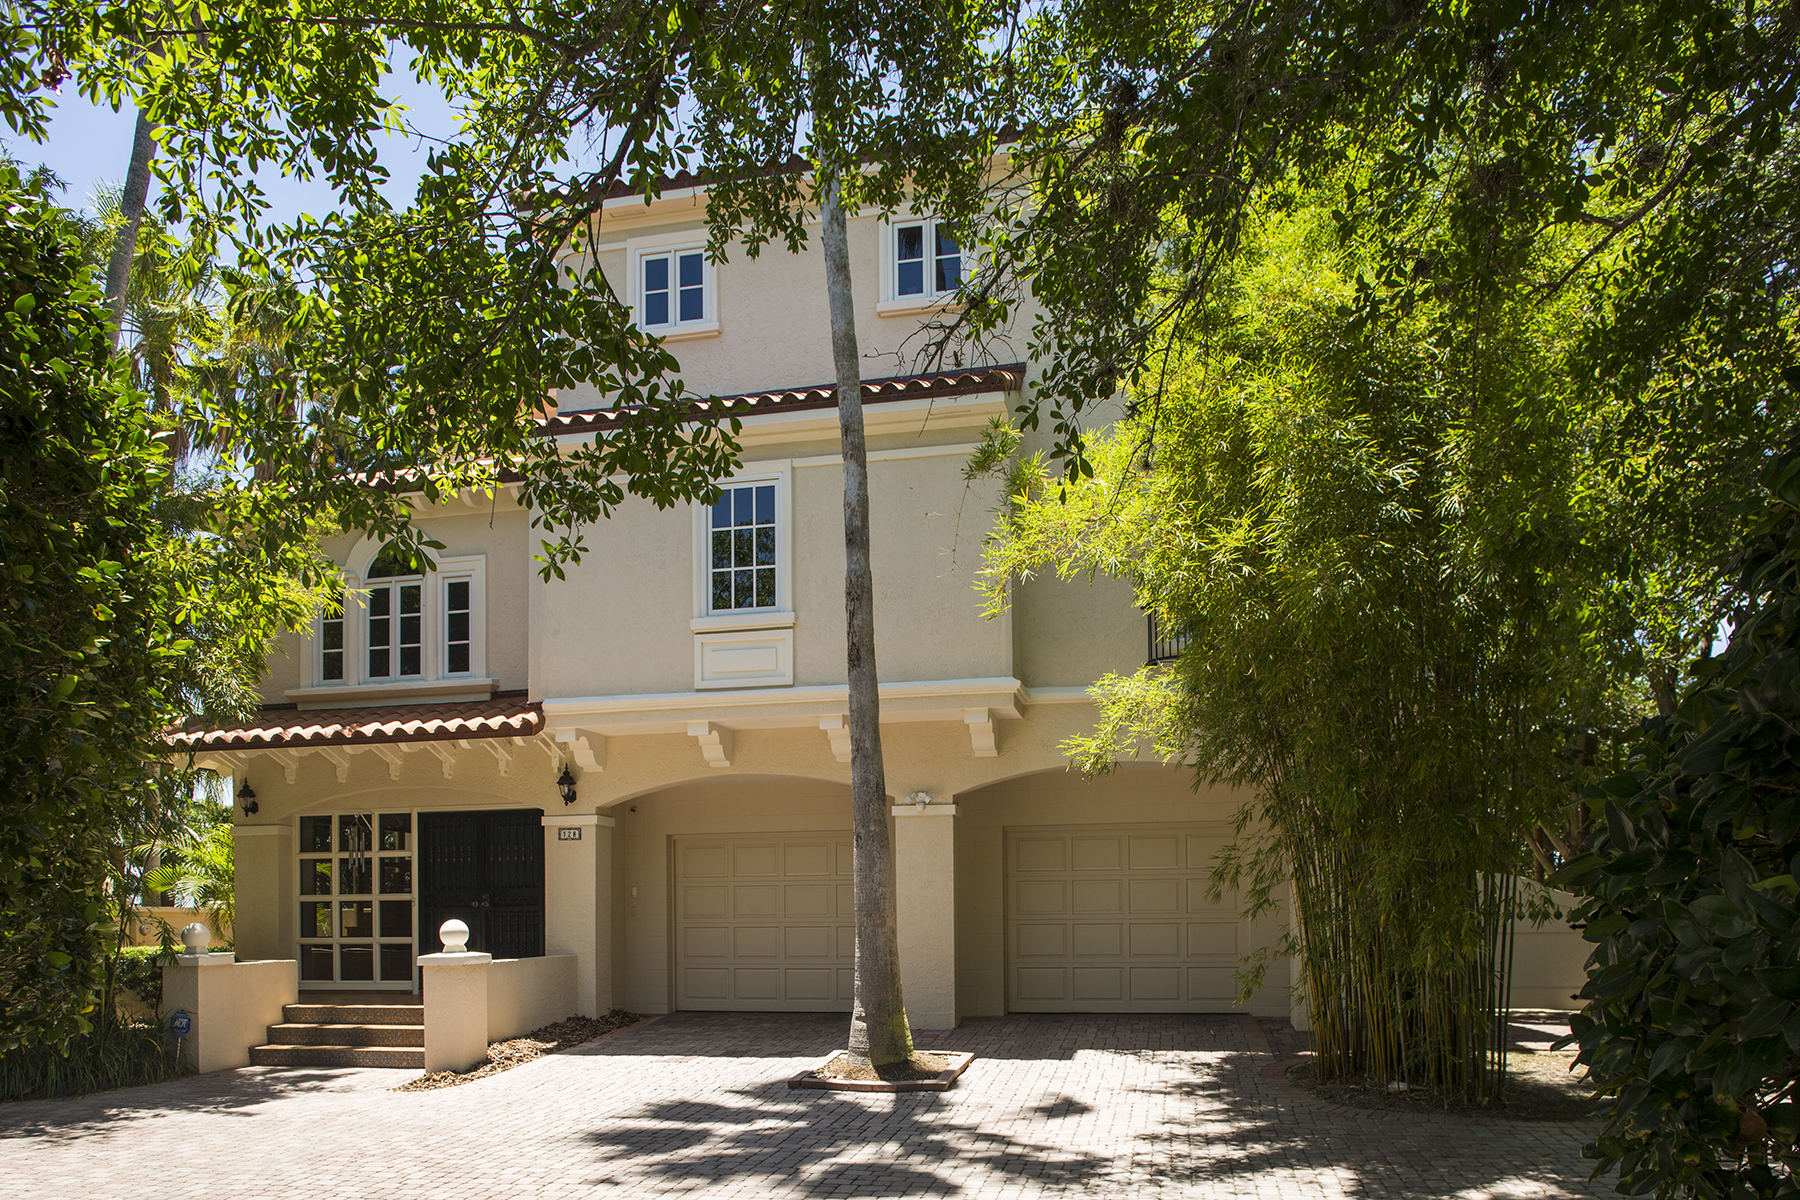 Vivienda unifamiliar por un Venta en PALM HARBOR 128 Carlyle Dr Palm Harbor, Florida, 34683 Estados Unidos